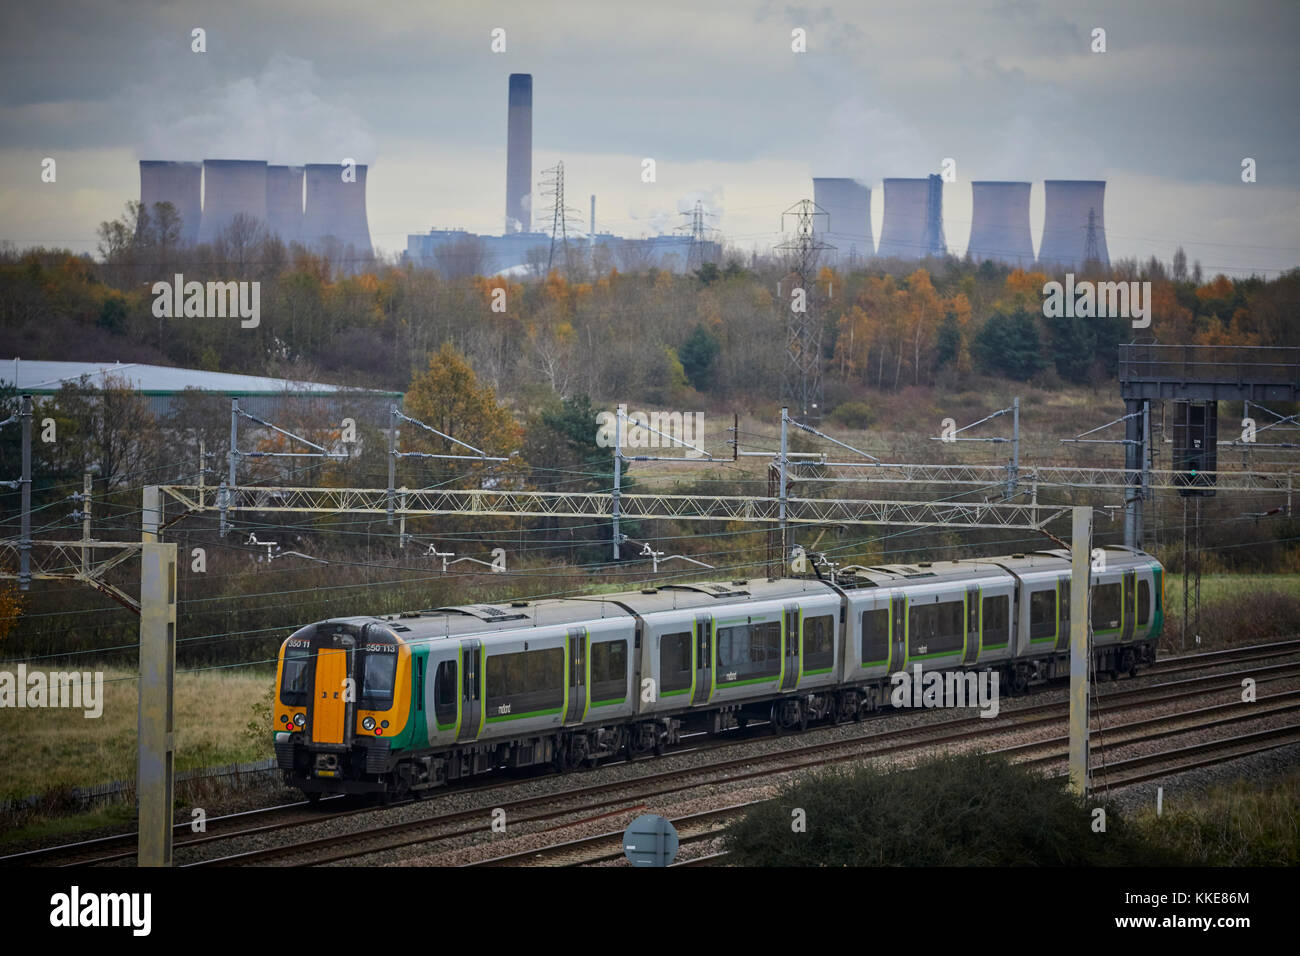 British Rail Class 350 Desiro electrical multiple unit built by Siemens  London Midland Liverpool to Birmingham - Stock Image